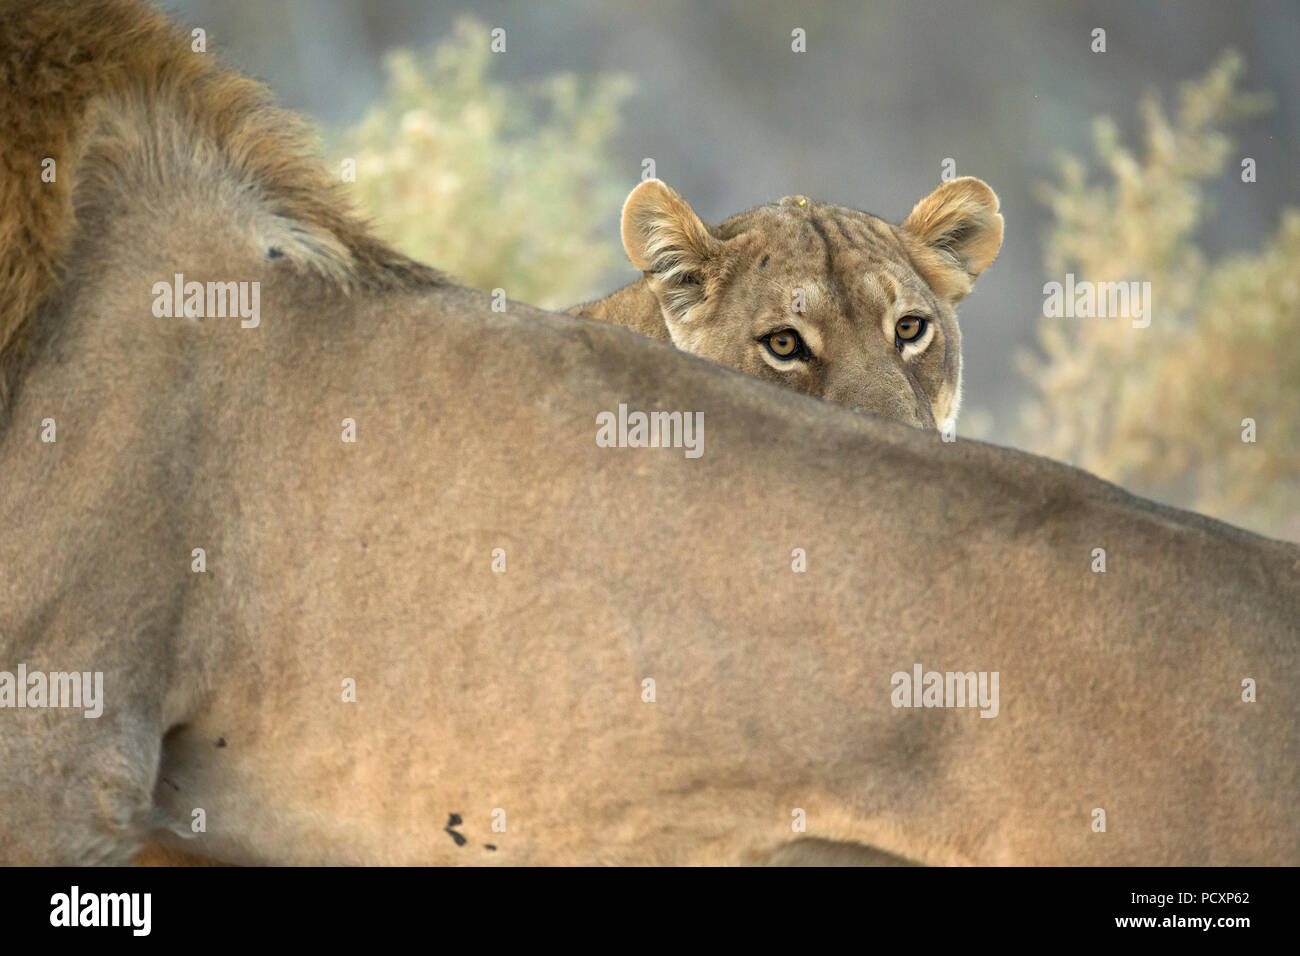 Lions, (Panthera leo) couple during mating - Stock Image